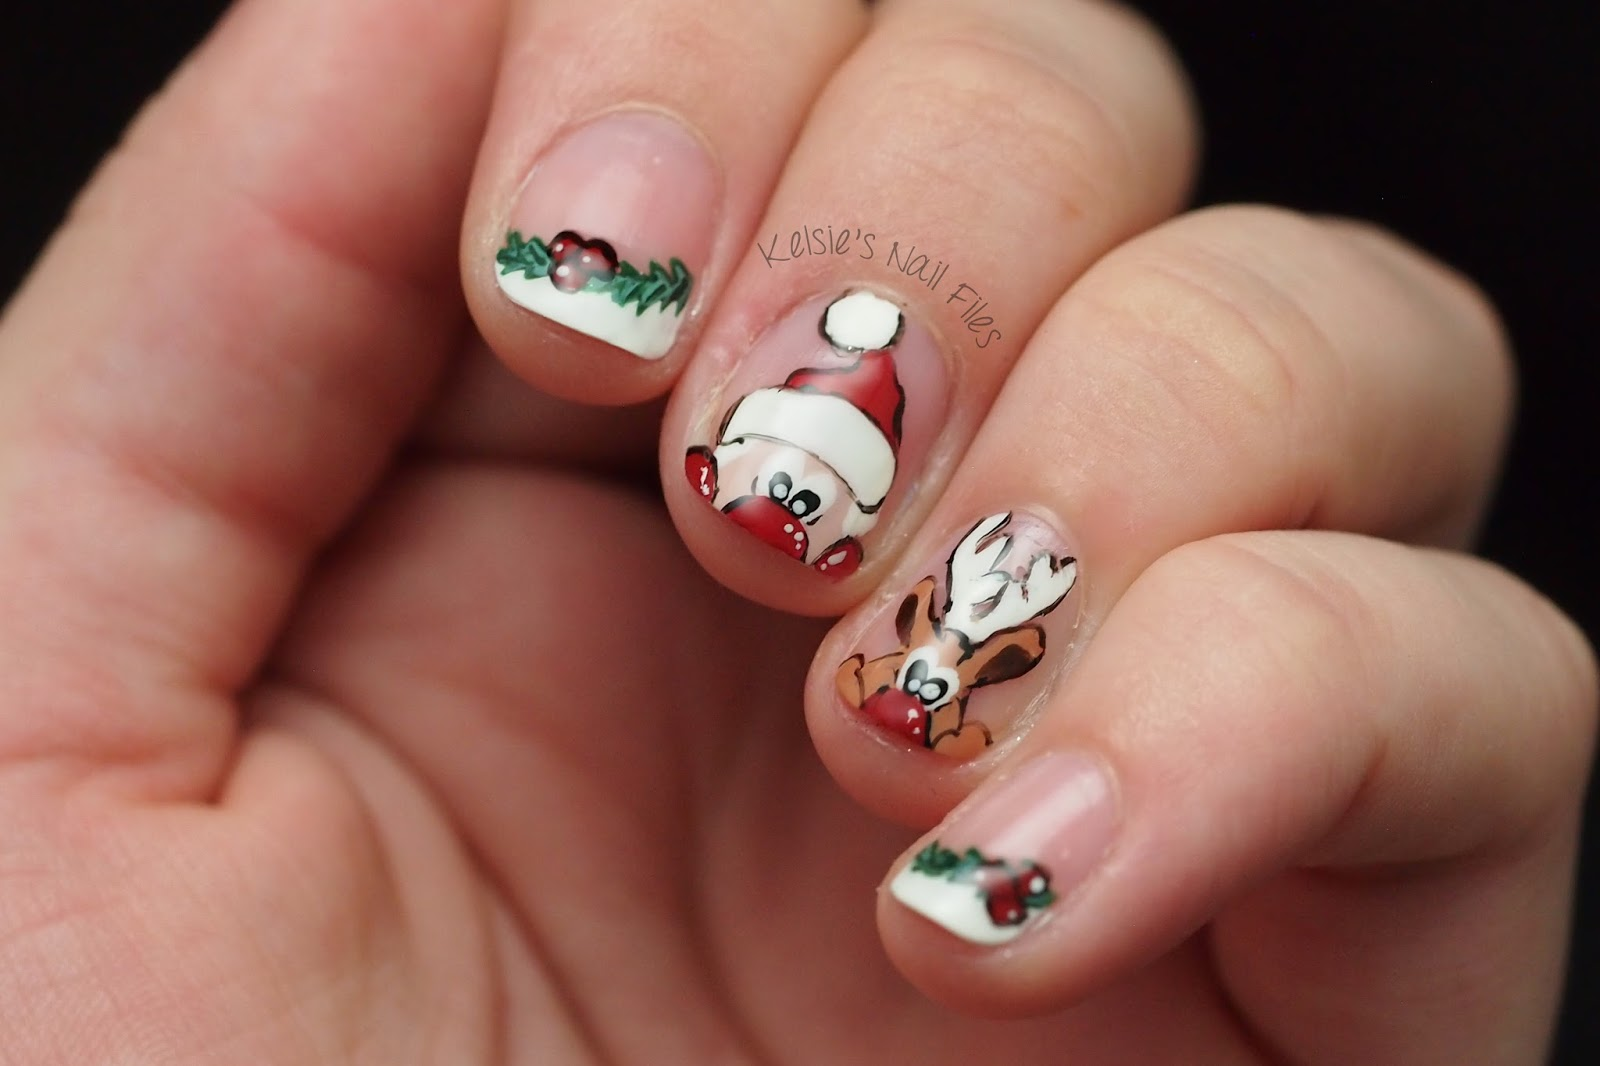 Kelsies nail files 2016 winter nail art challenge reindeer for day 7 reindeer santa or elfs i decided to go cartoon and do a peeking santa and rudolph prinsesfo Images